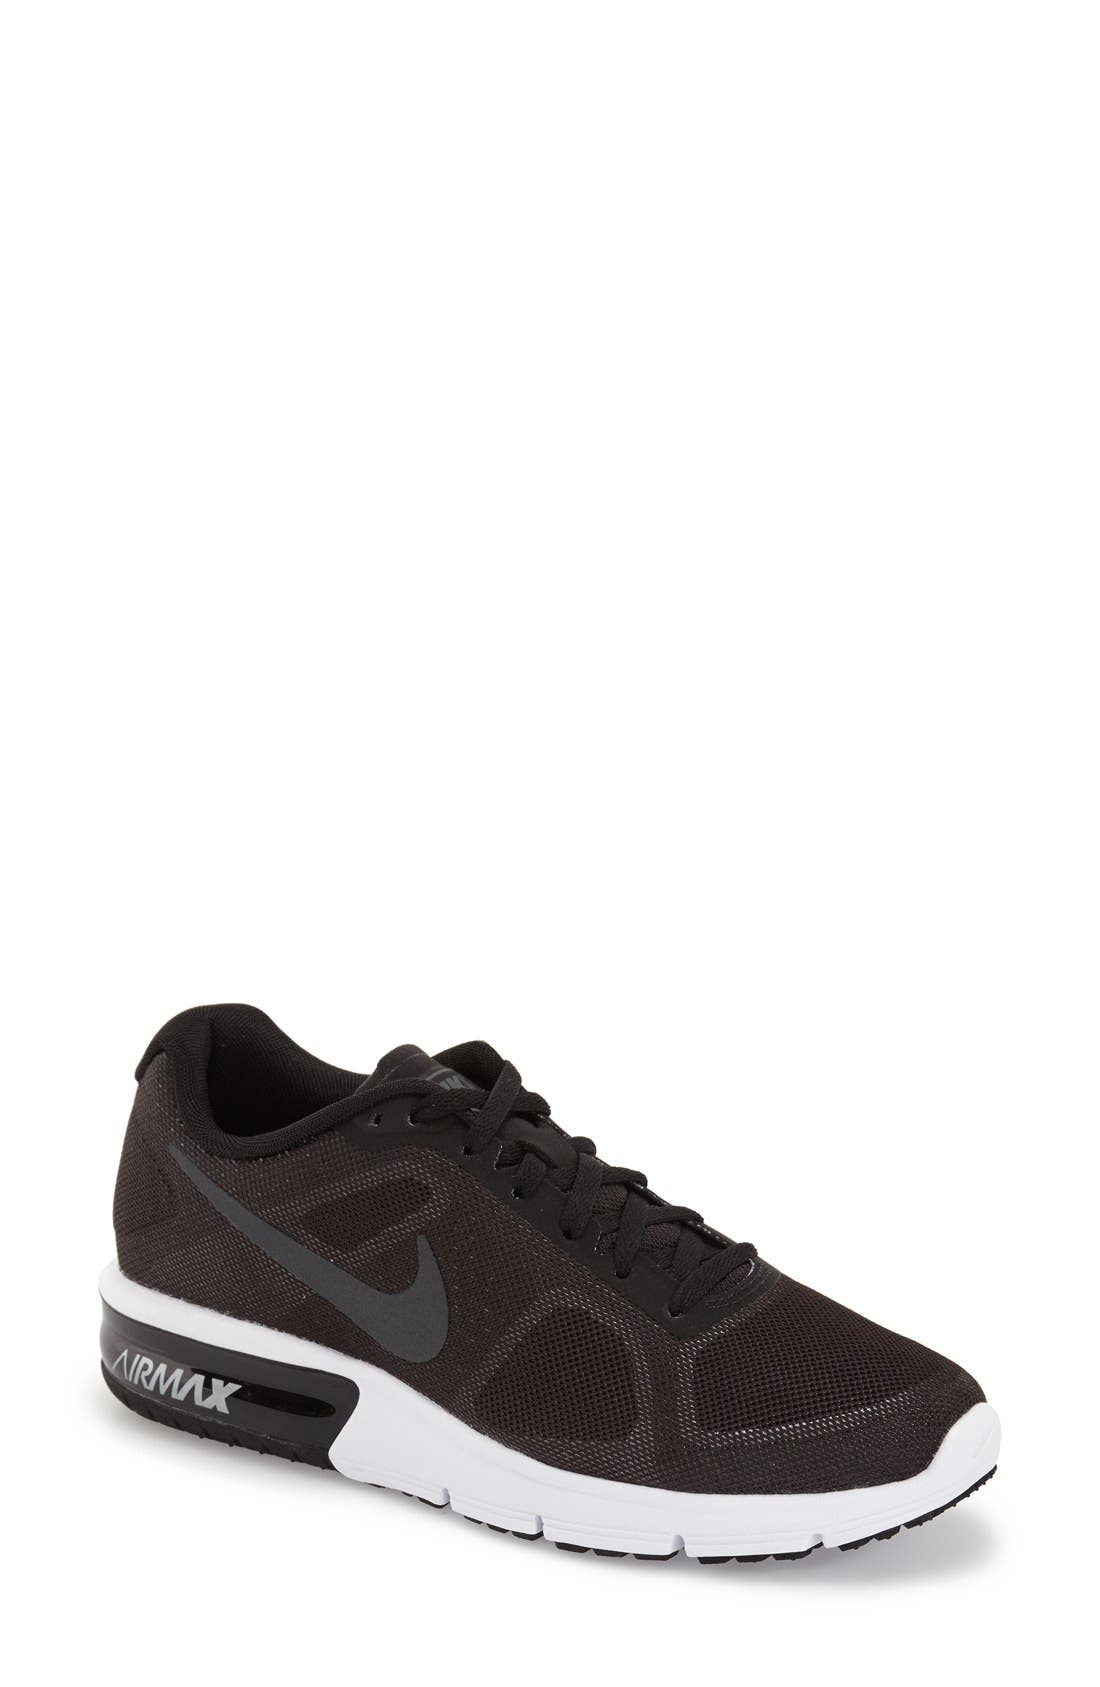 Alternate Image 1 Selected - Nike 'Air Max Sequent' Running Shoe (Women)